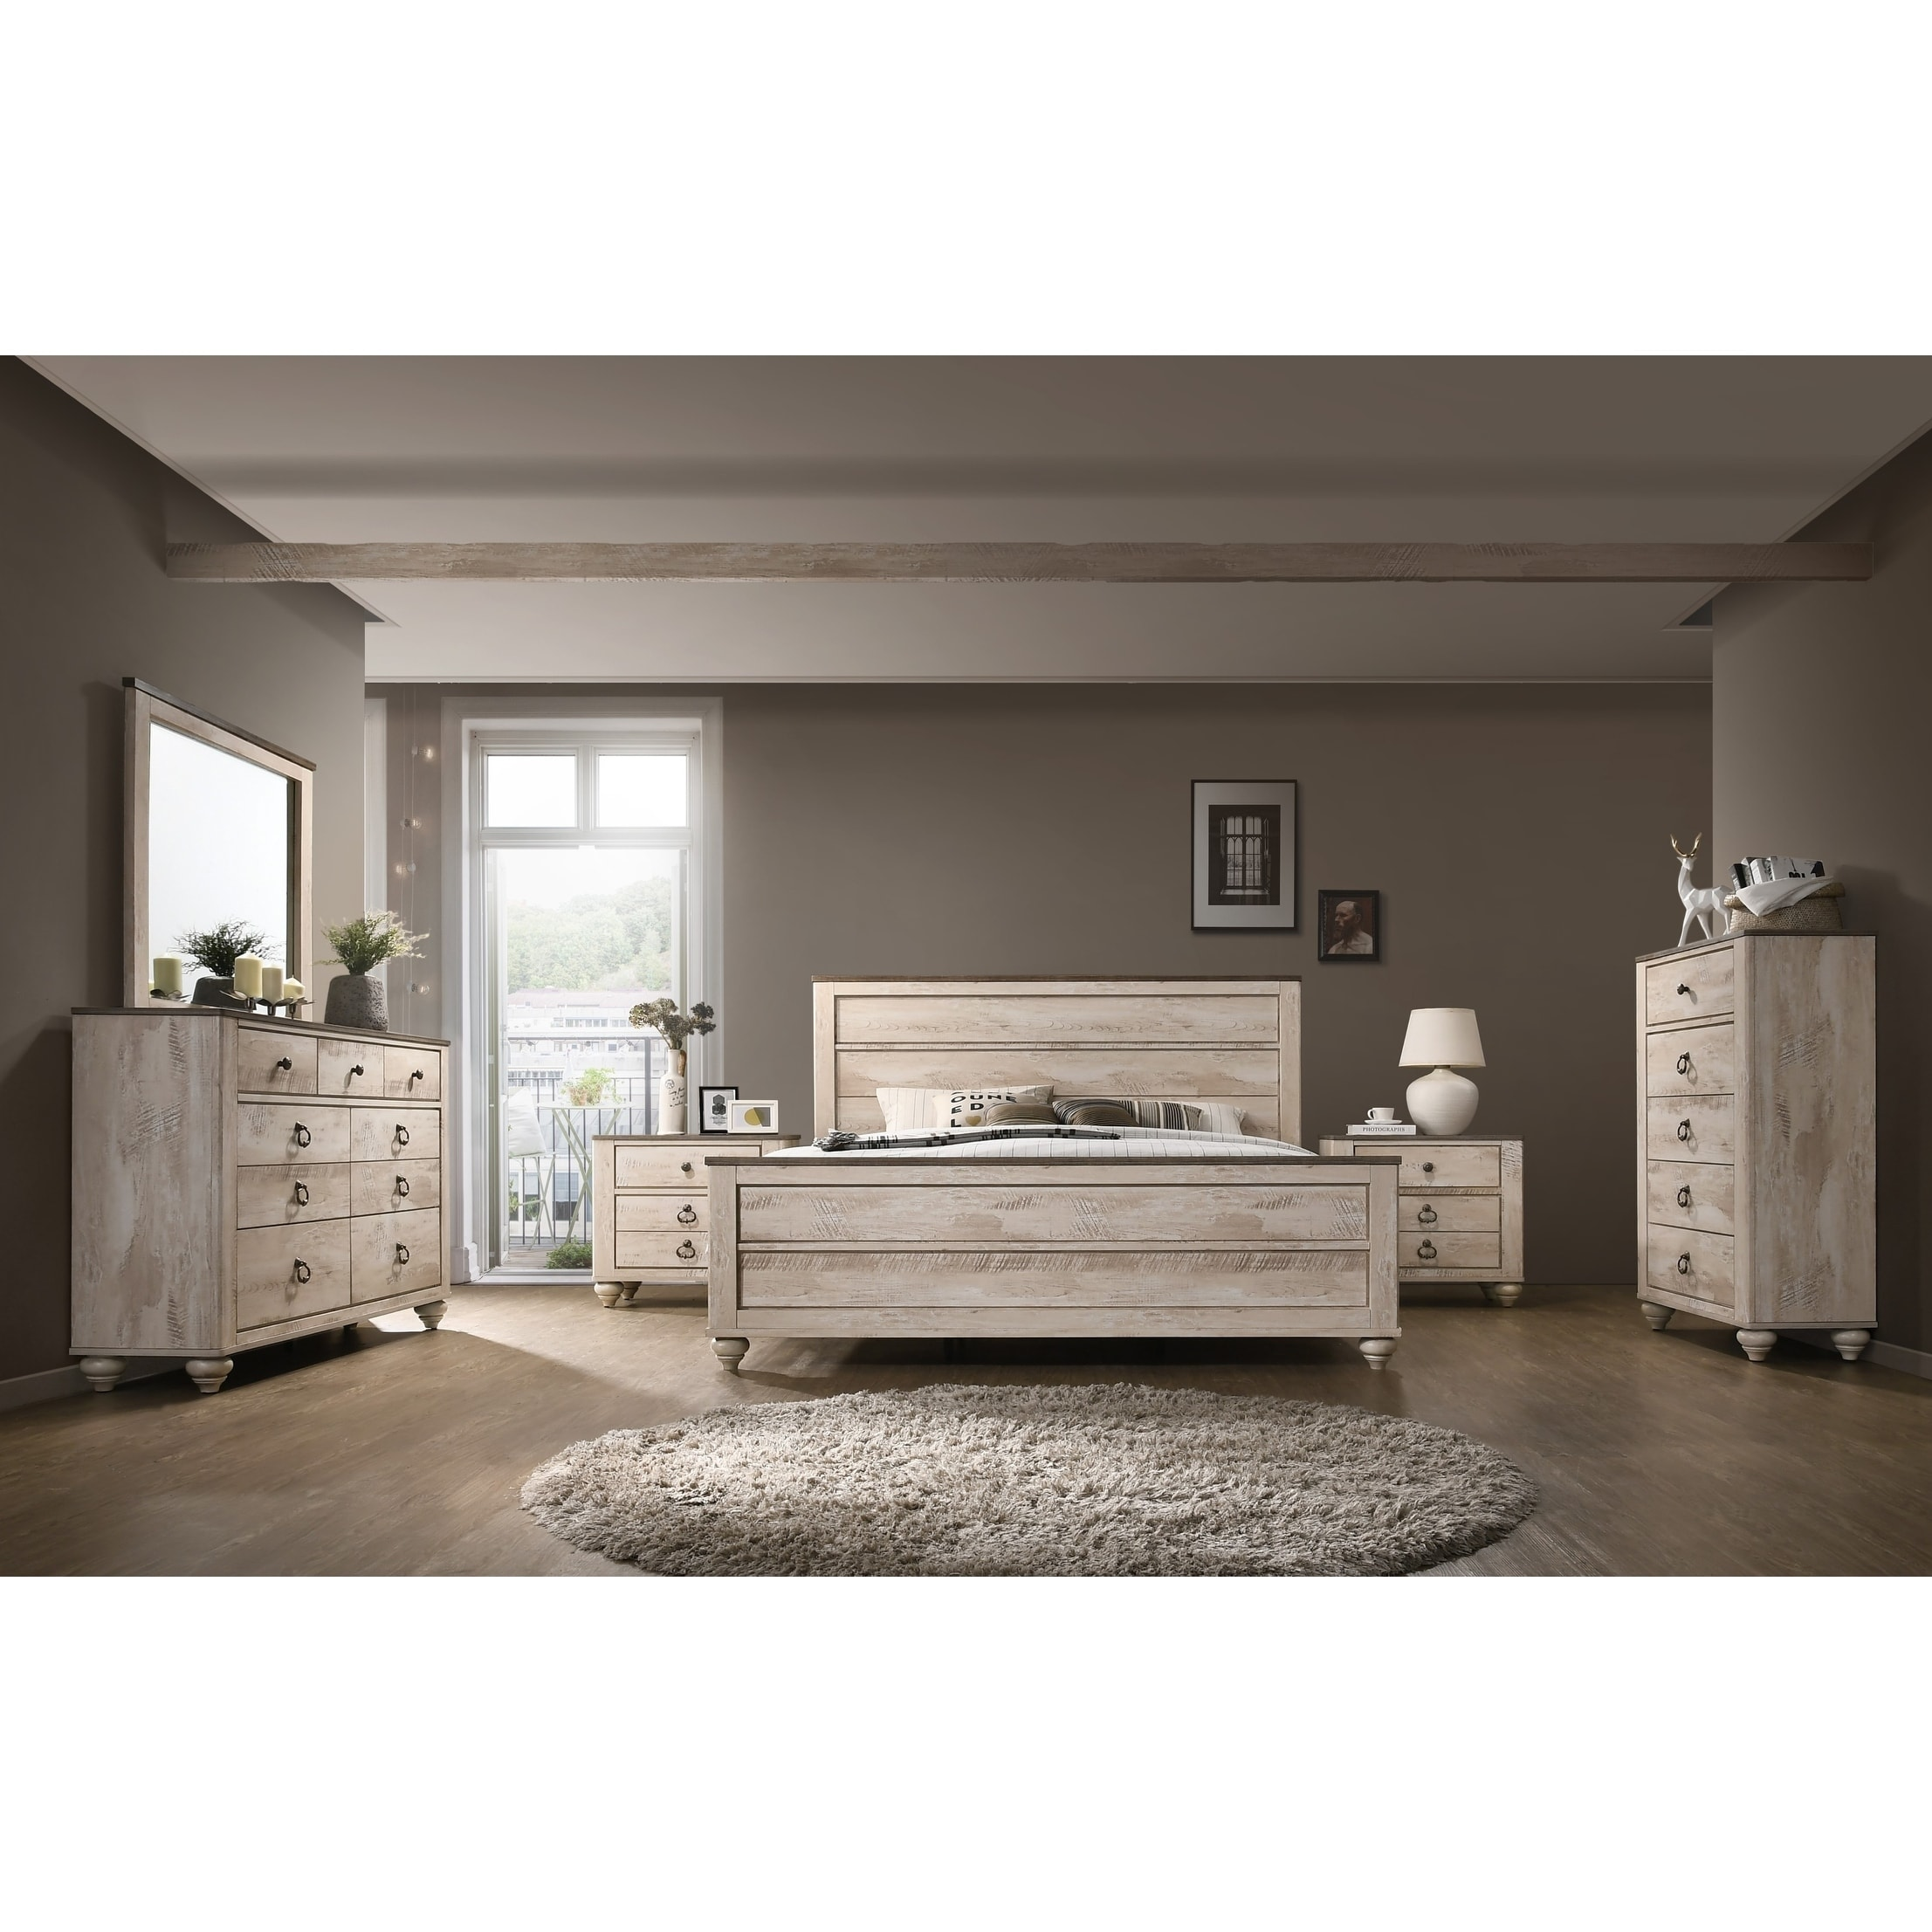 Imerland Contemporary White Wash Finish 6 Piece Bedroom Set King On Sale Overstock 19758673